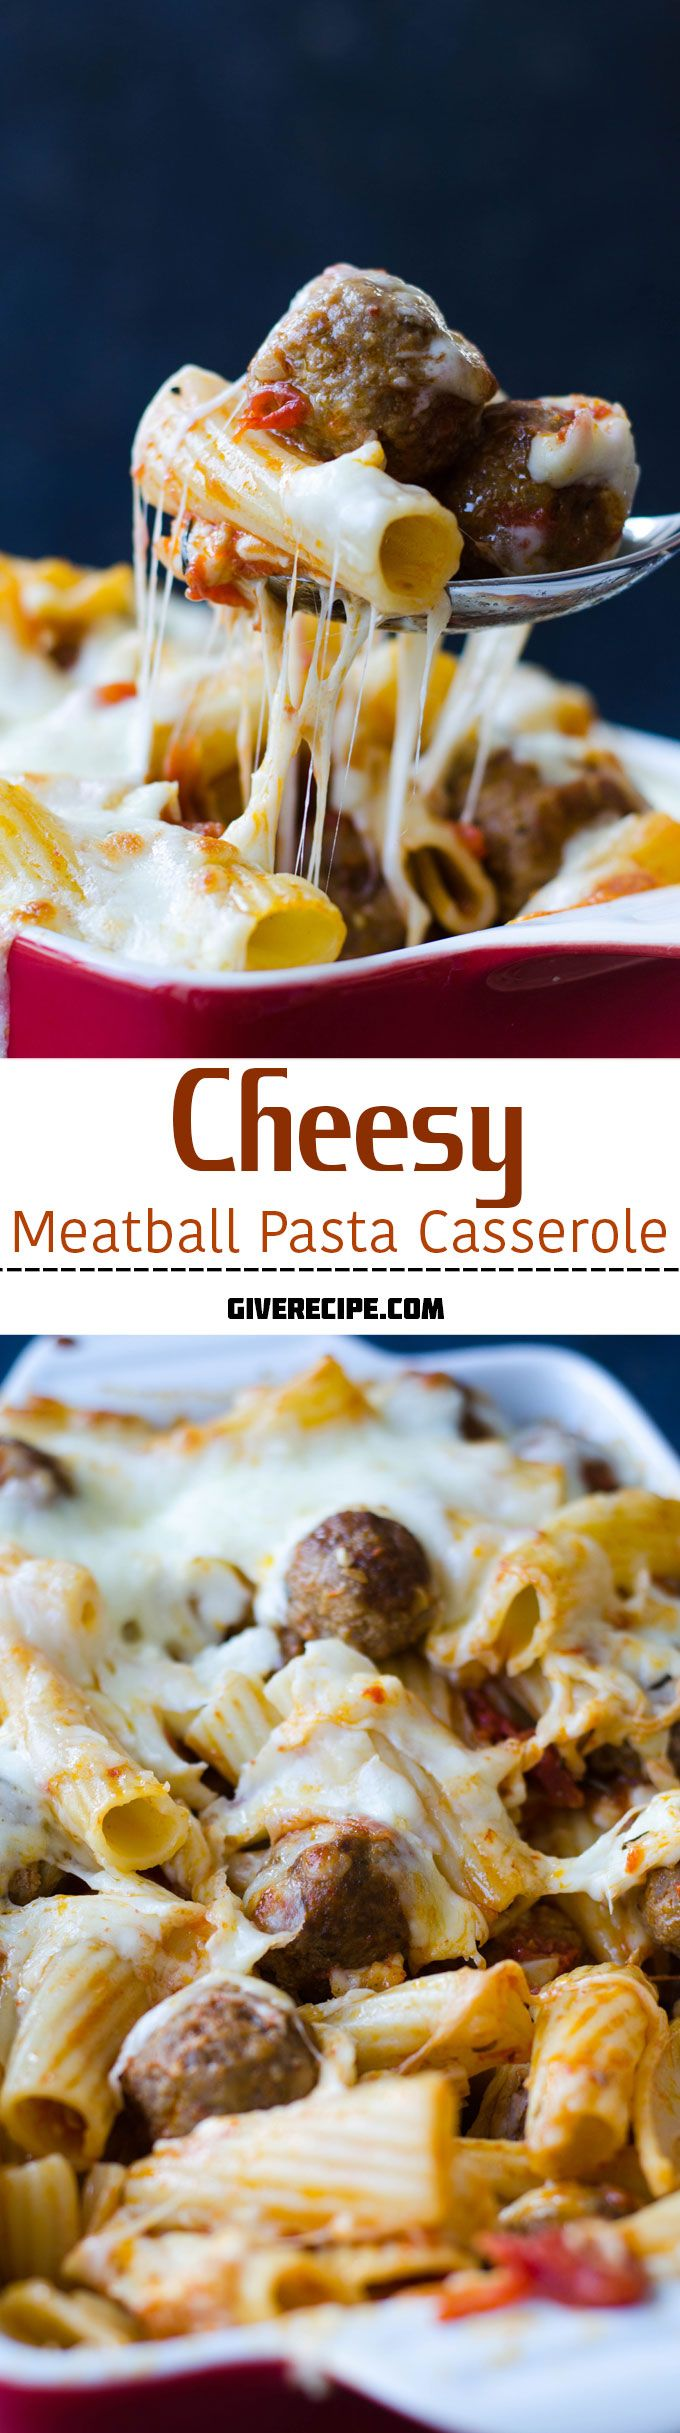 Cheesy Meatball Pasta Casserole is a dinner perfection. You will drool when it's baking. Don't use frozen meatballs for this recipe, make them yourself! | giverecipe.com